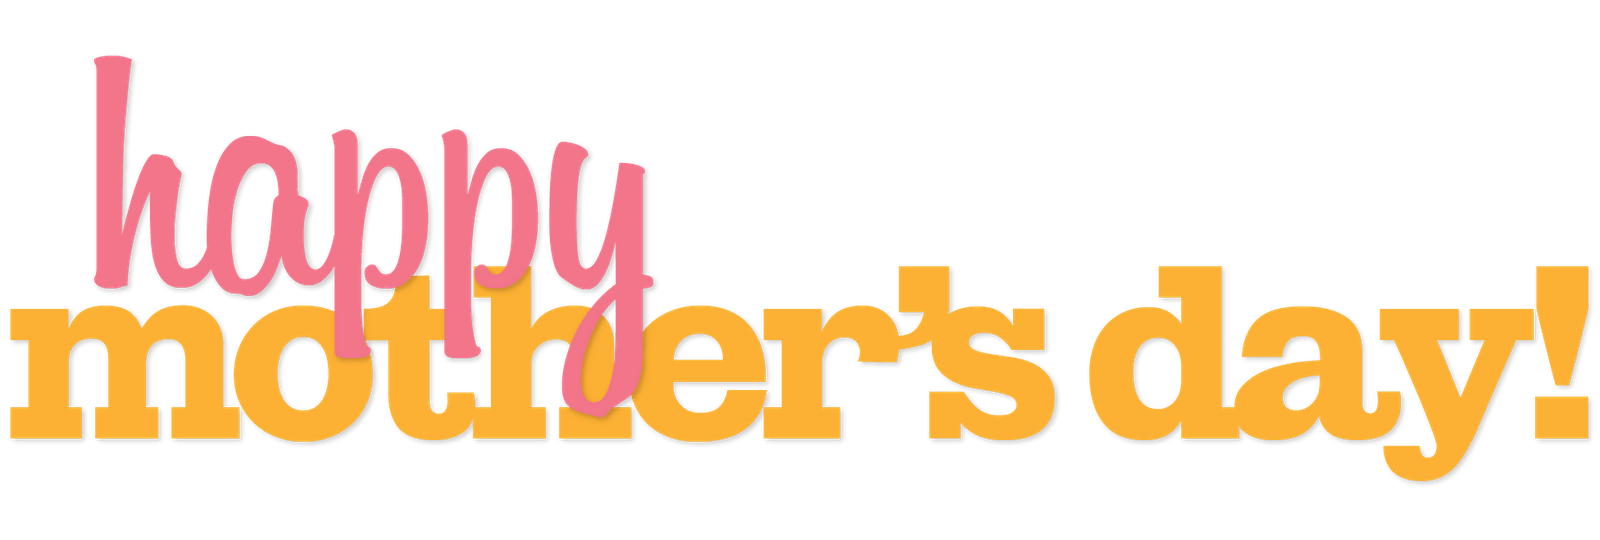 Mothers day banner png. Happy transparent stickpng download